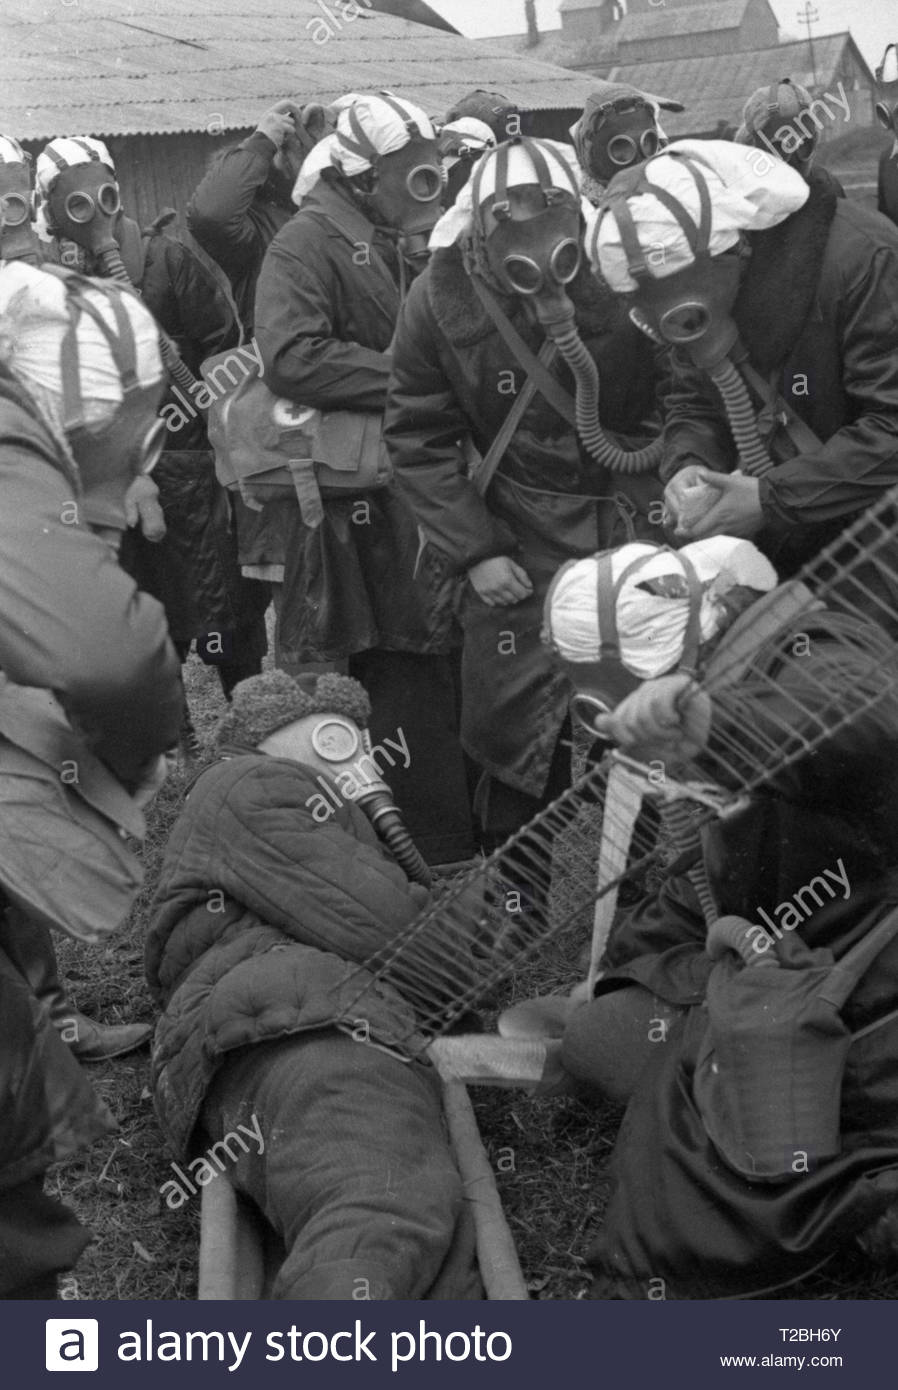 Civil defense exercises. In Soviet times our society was regularly preparing for a chemical attack from the side of capitalist countries. On the photo simulates the situation when chemical attack still occurred. Female nurses in gas masks. They put on a stretcher the alleged victim who is also in a gas mask. Women provide him with first aid. - Stock Image